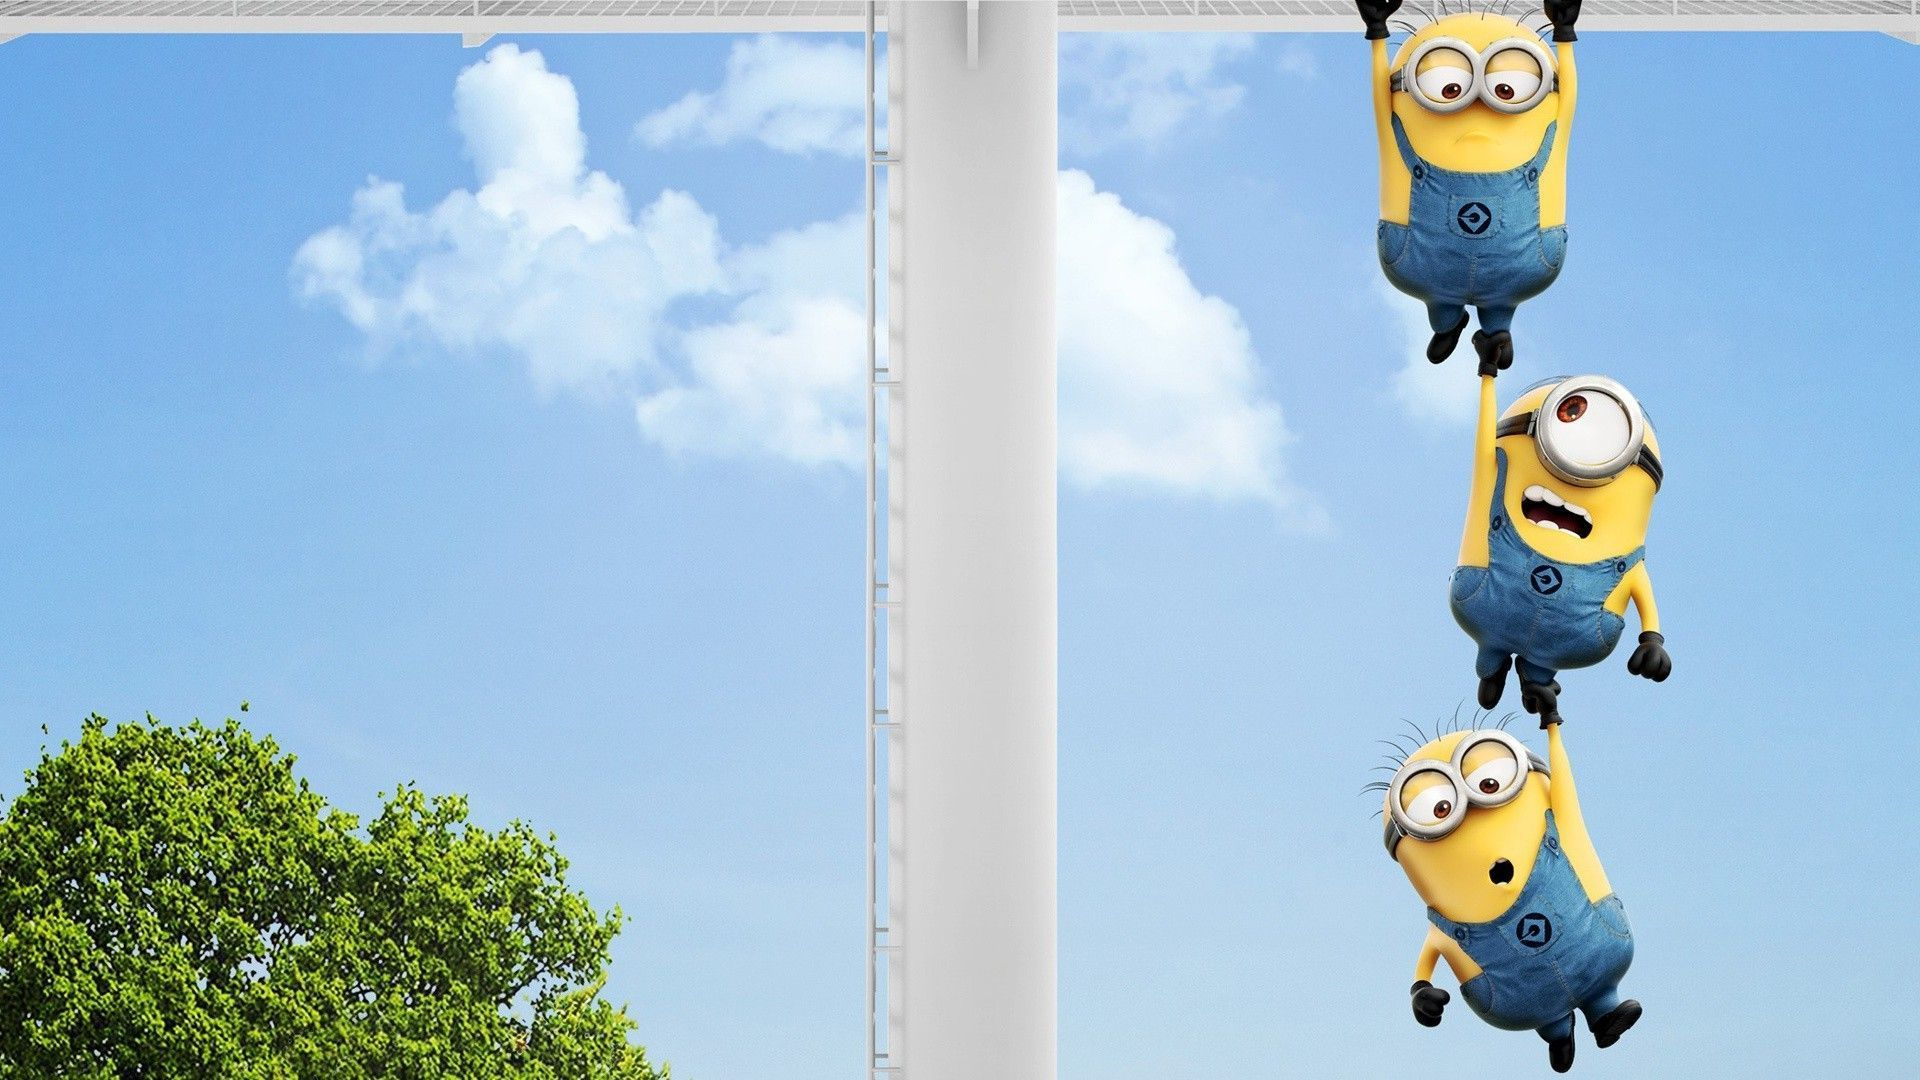 Funny Minions HD Wallpaper 1920x1080 1080x1920px Minion